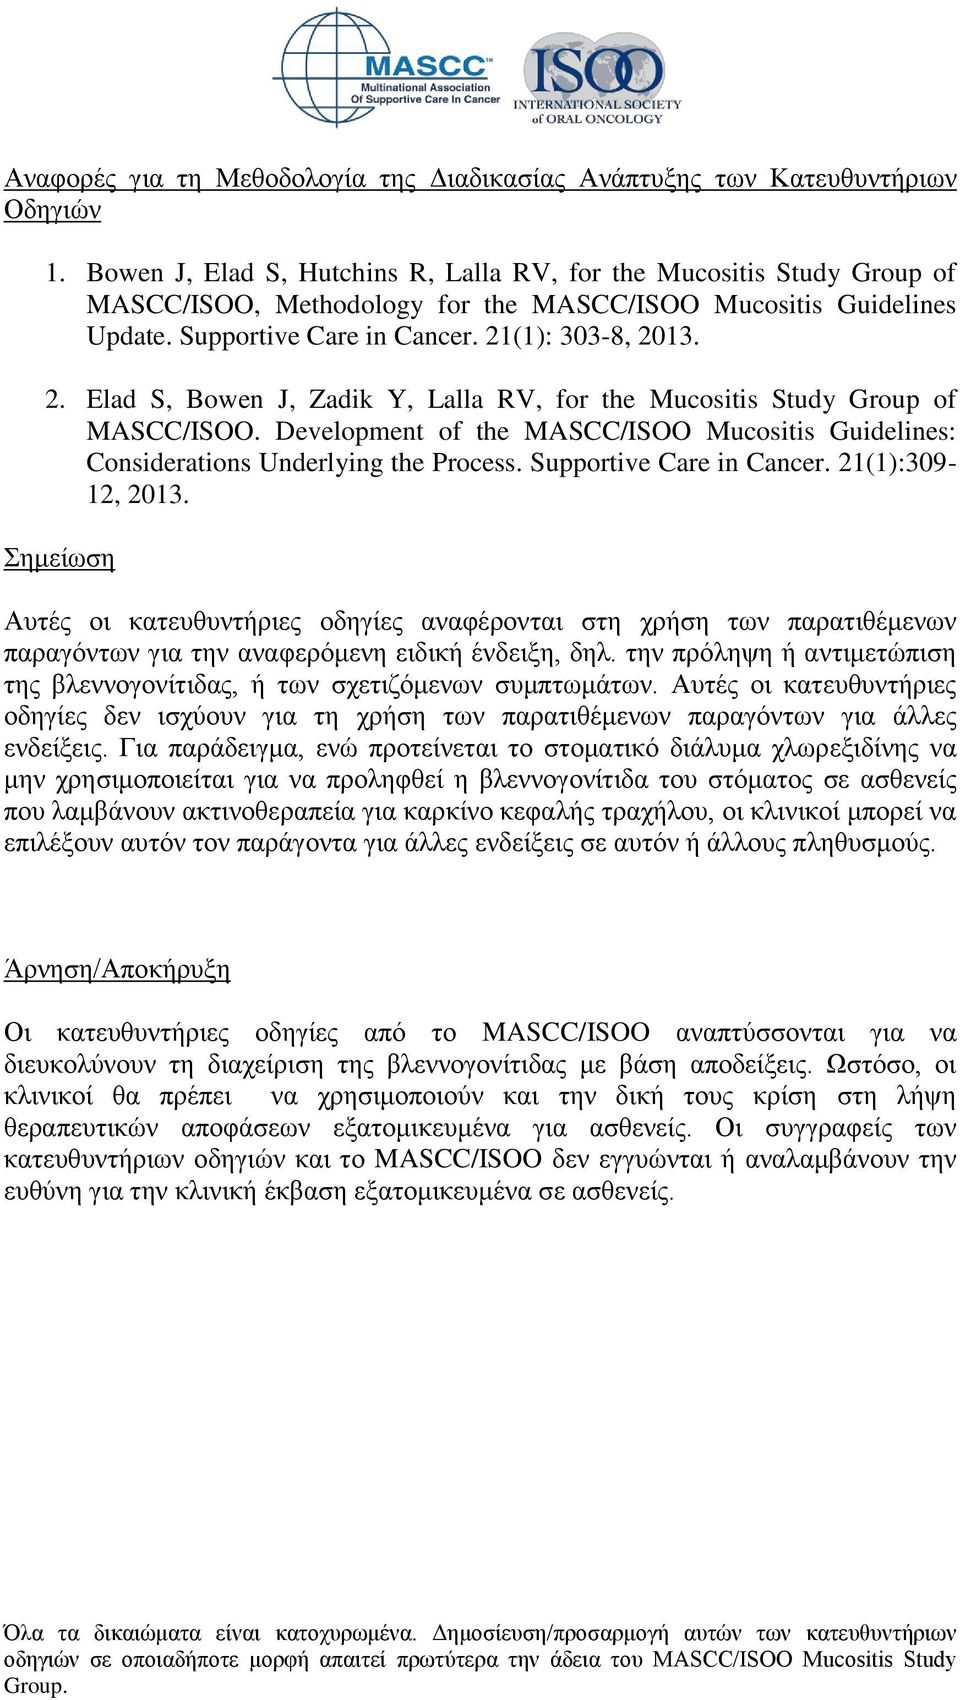 (1): 303-8, 2013. 2. Elad S, Bowen J, Zadik Y, Lalla RV, for the Mucositis Study Group of MASCC/ISOO. Development of the MASCC/ISOO Mucositis Guidelines: Considerations Underlying the Process.